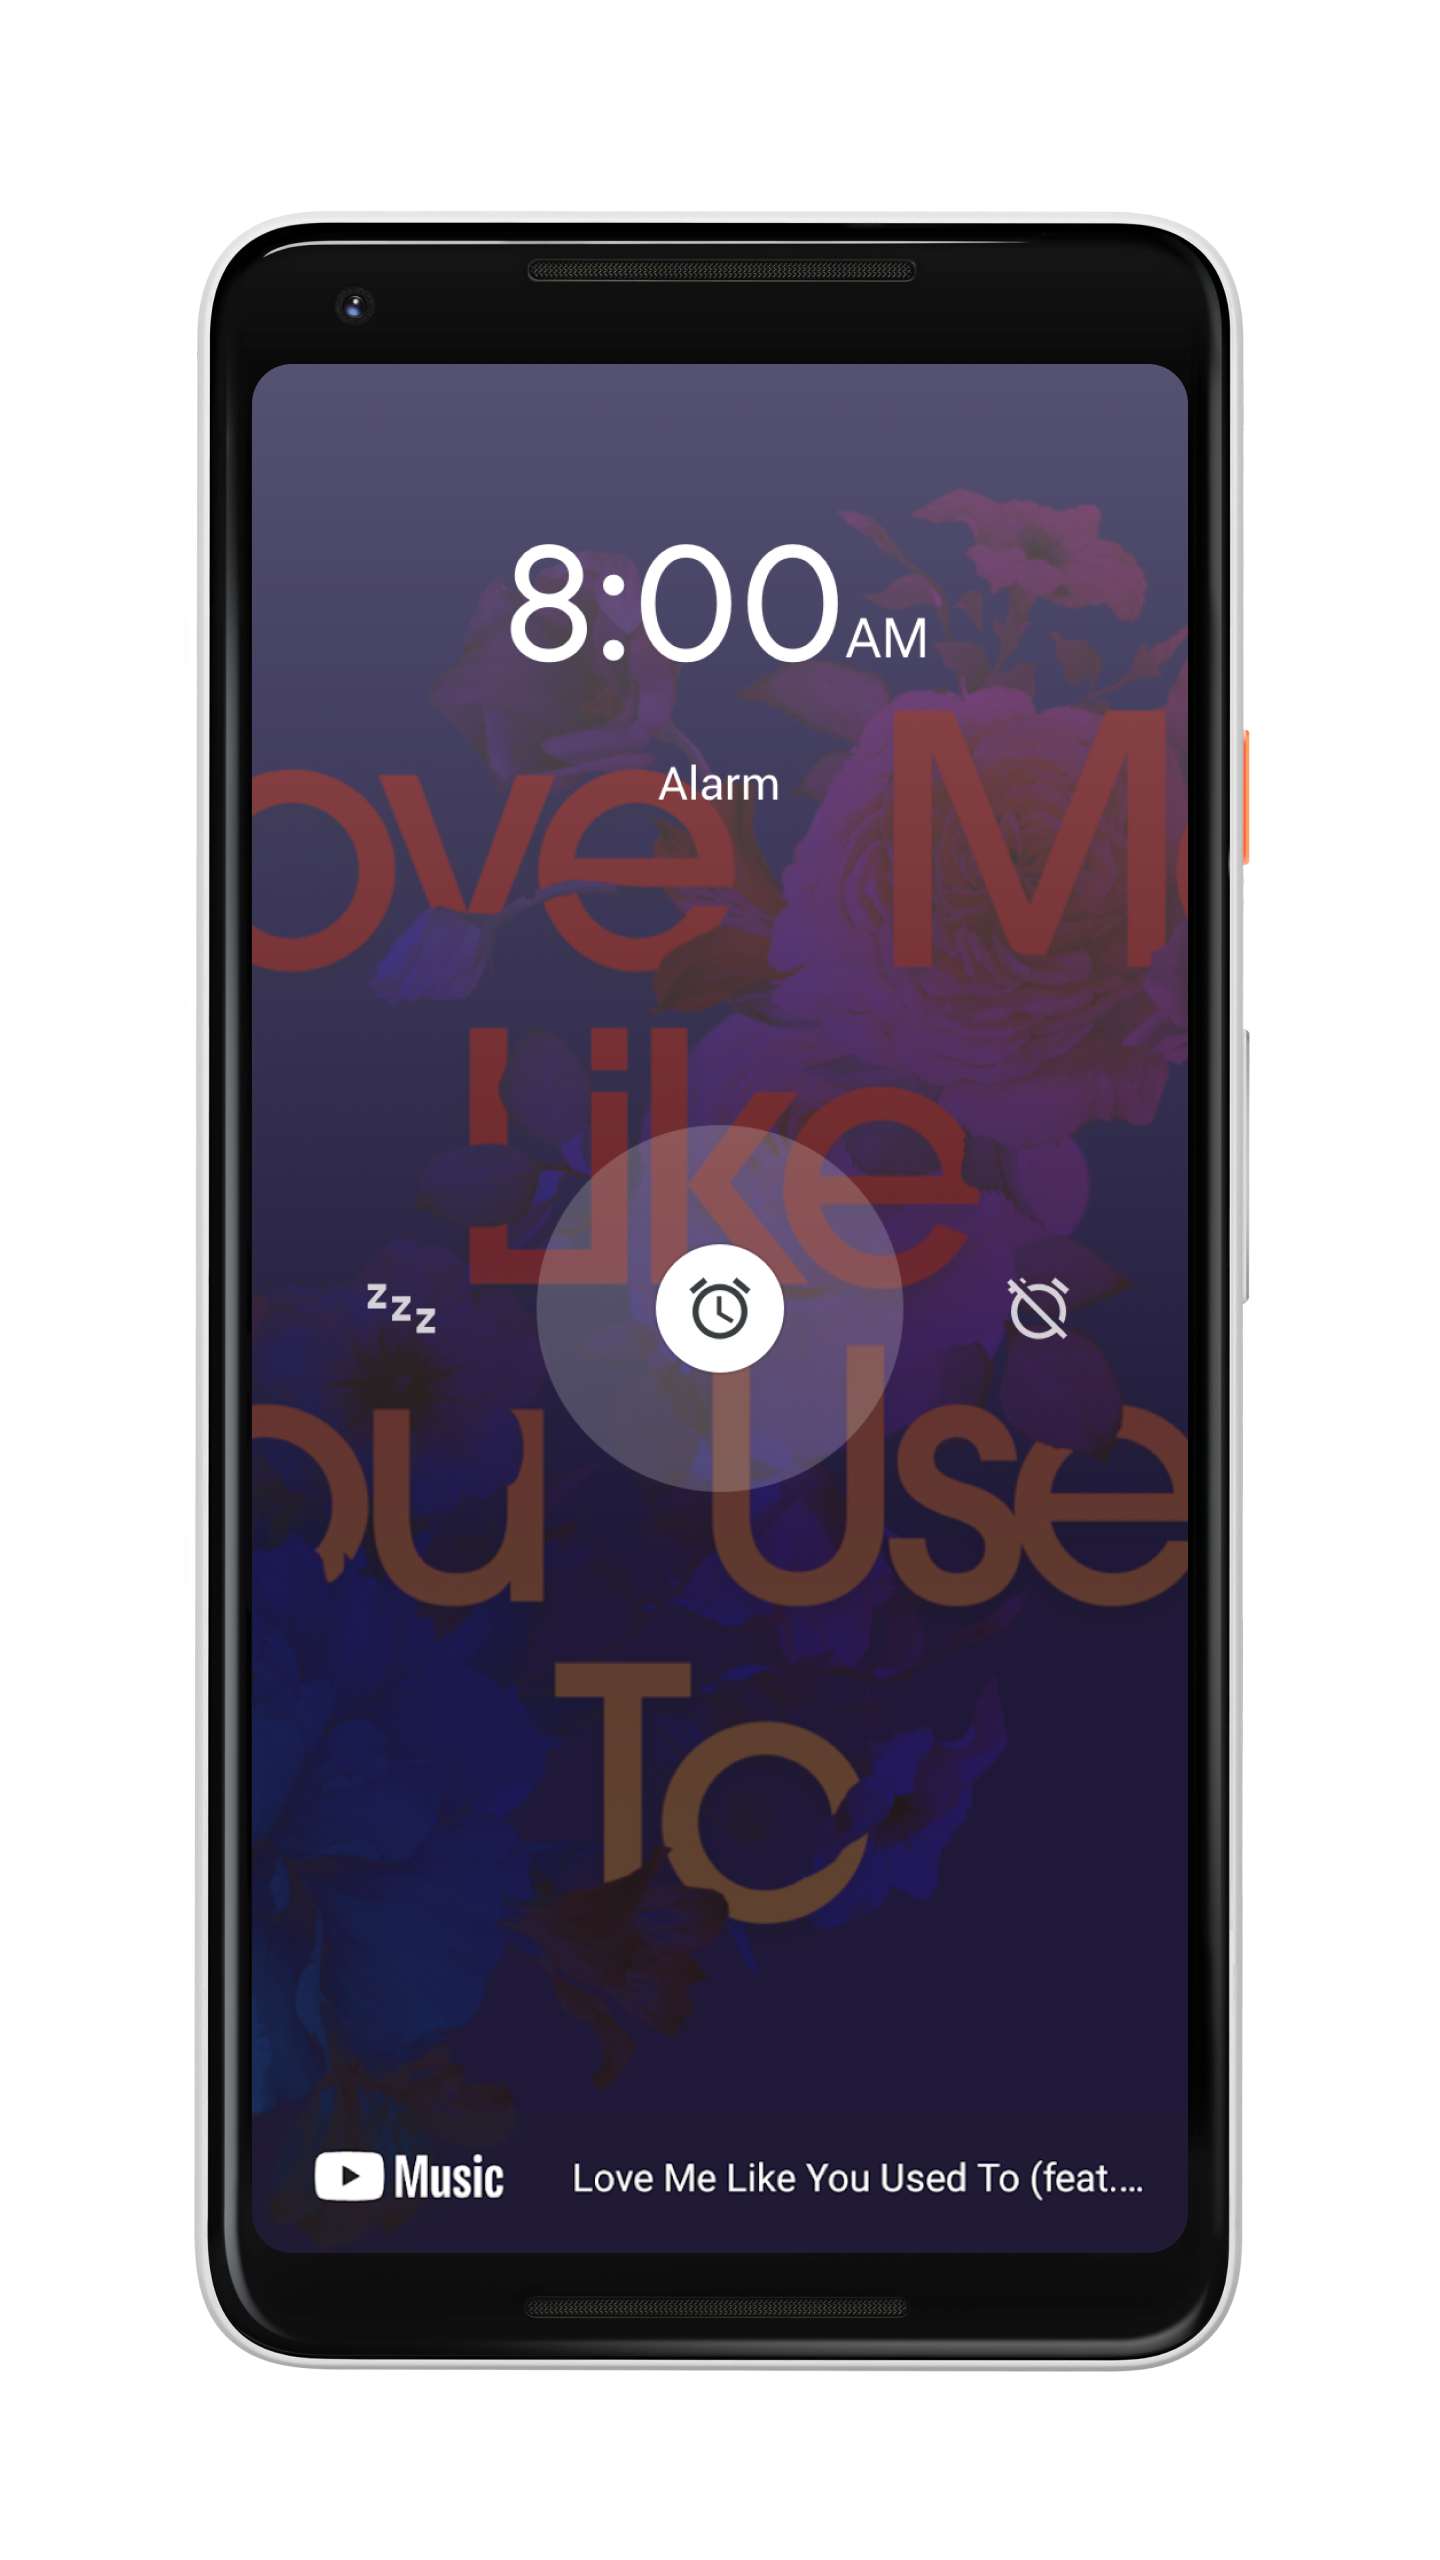 Google-Clock-Alarm-Music-UX-app